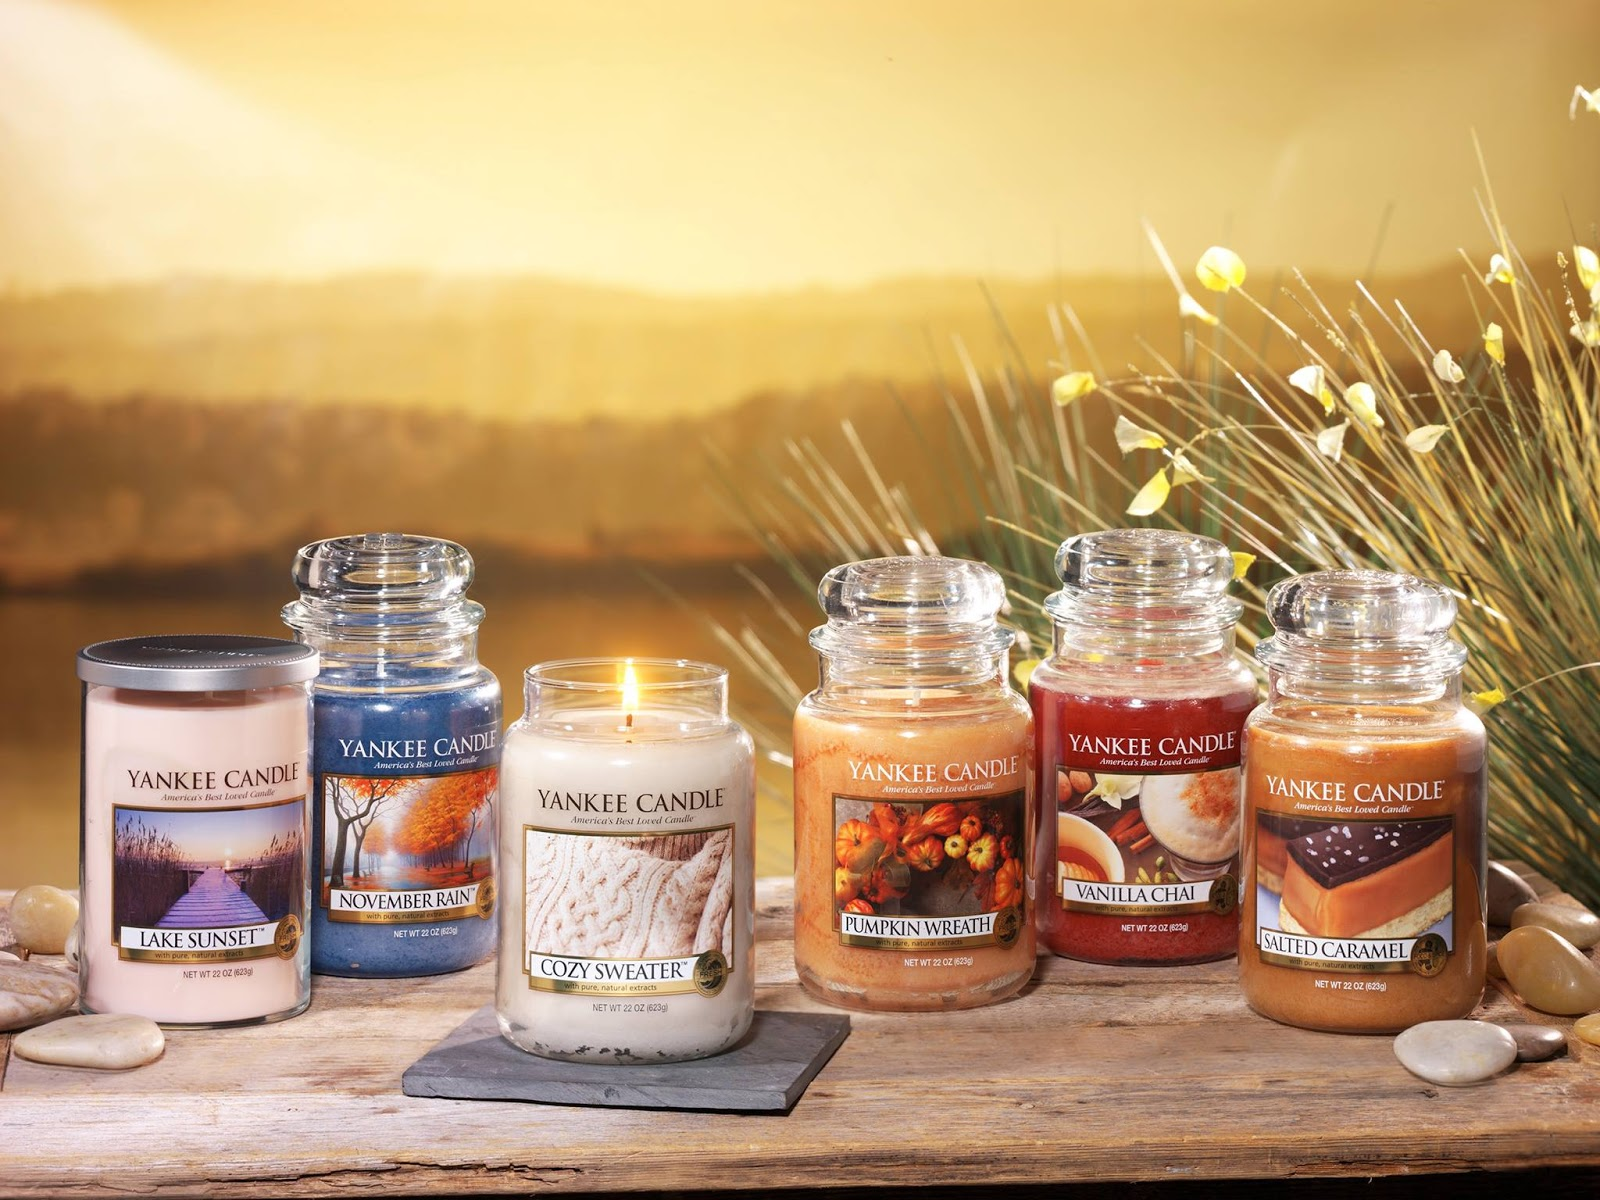 'Tis The Season: New Yankee Candle Fall Scents For 2013!